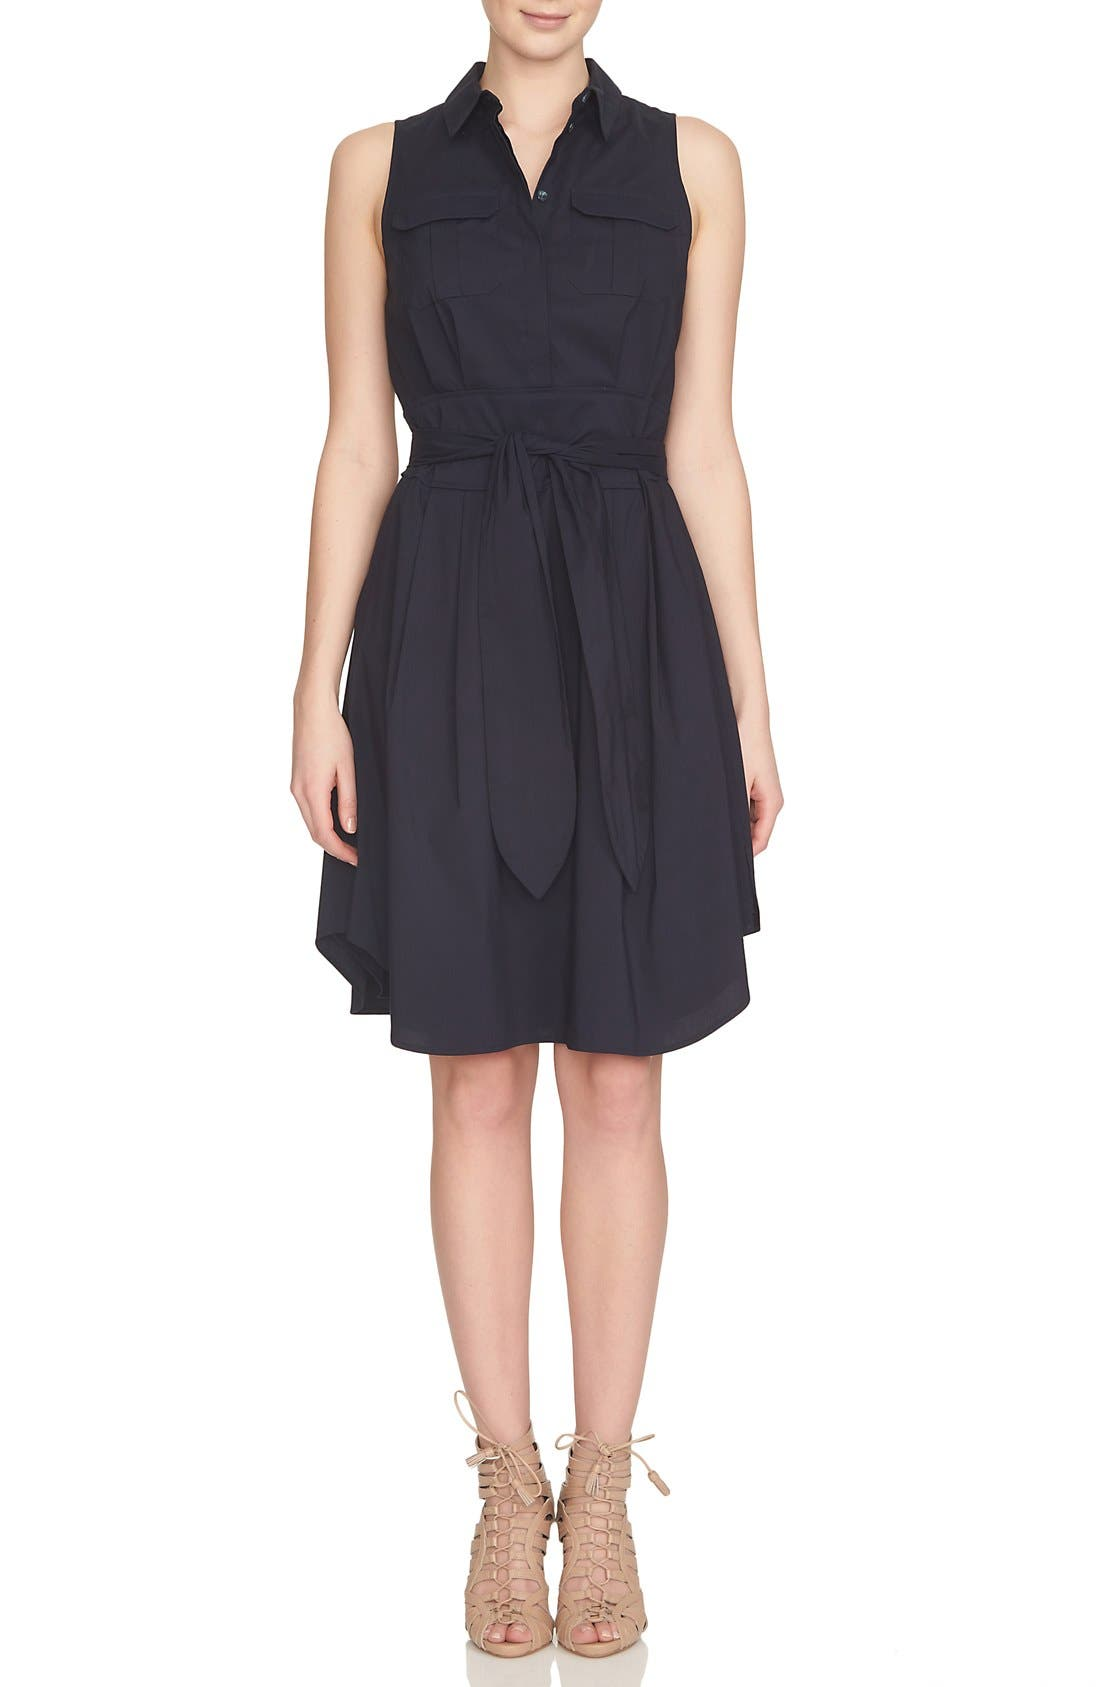 Alternate Image 1 Selected - Cynthia Steffe Collared Cotton Blend Fit & Flare Dress